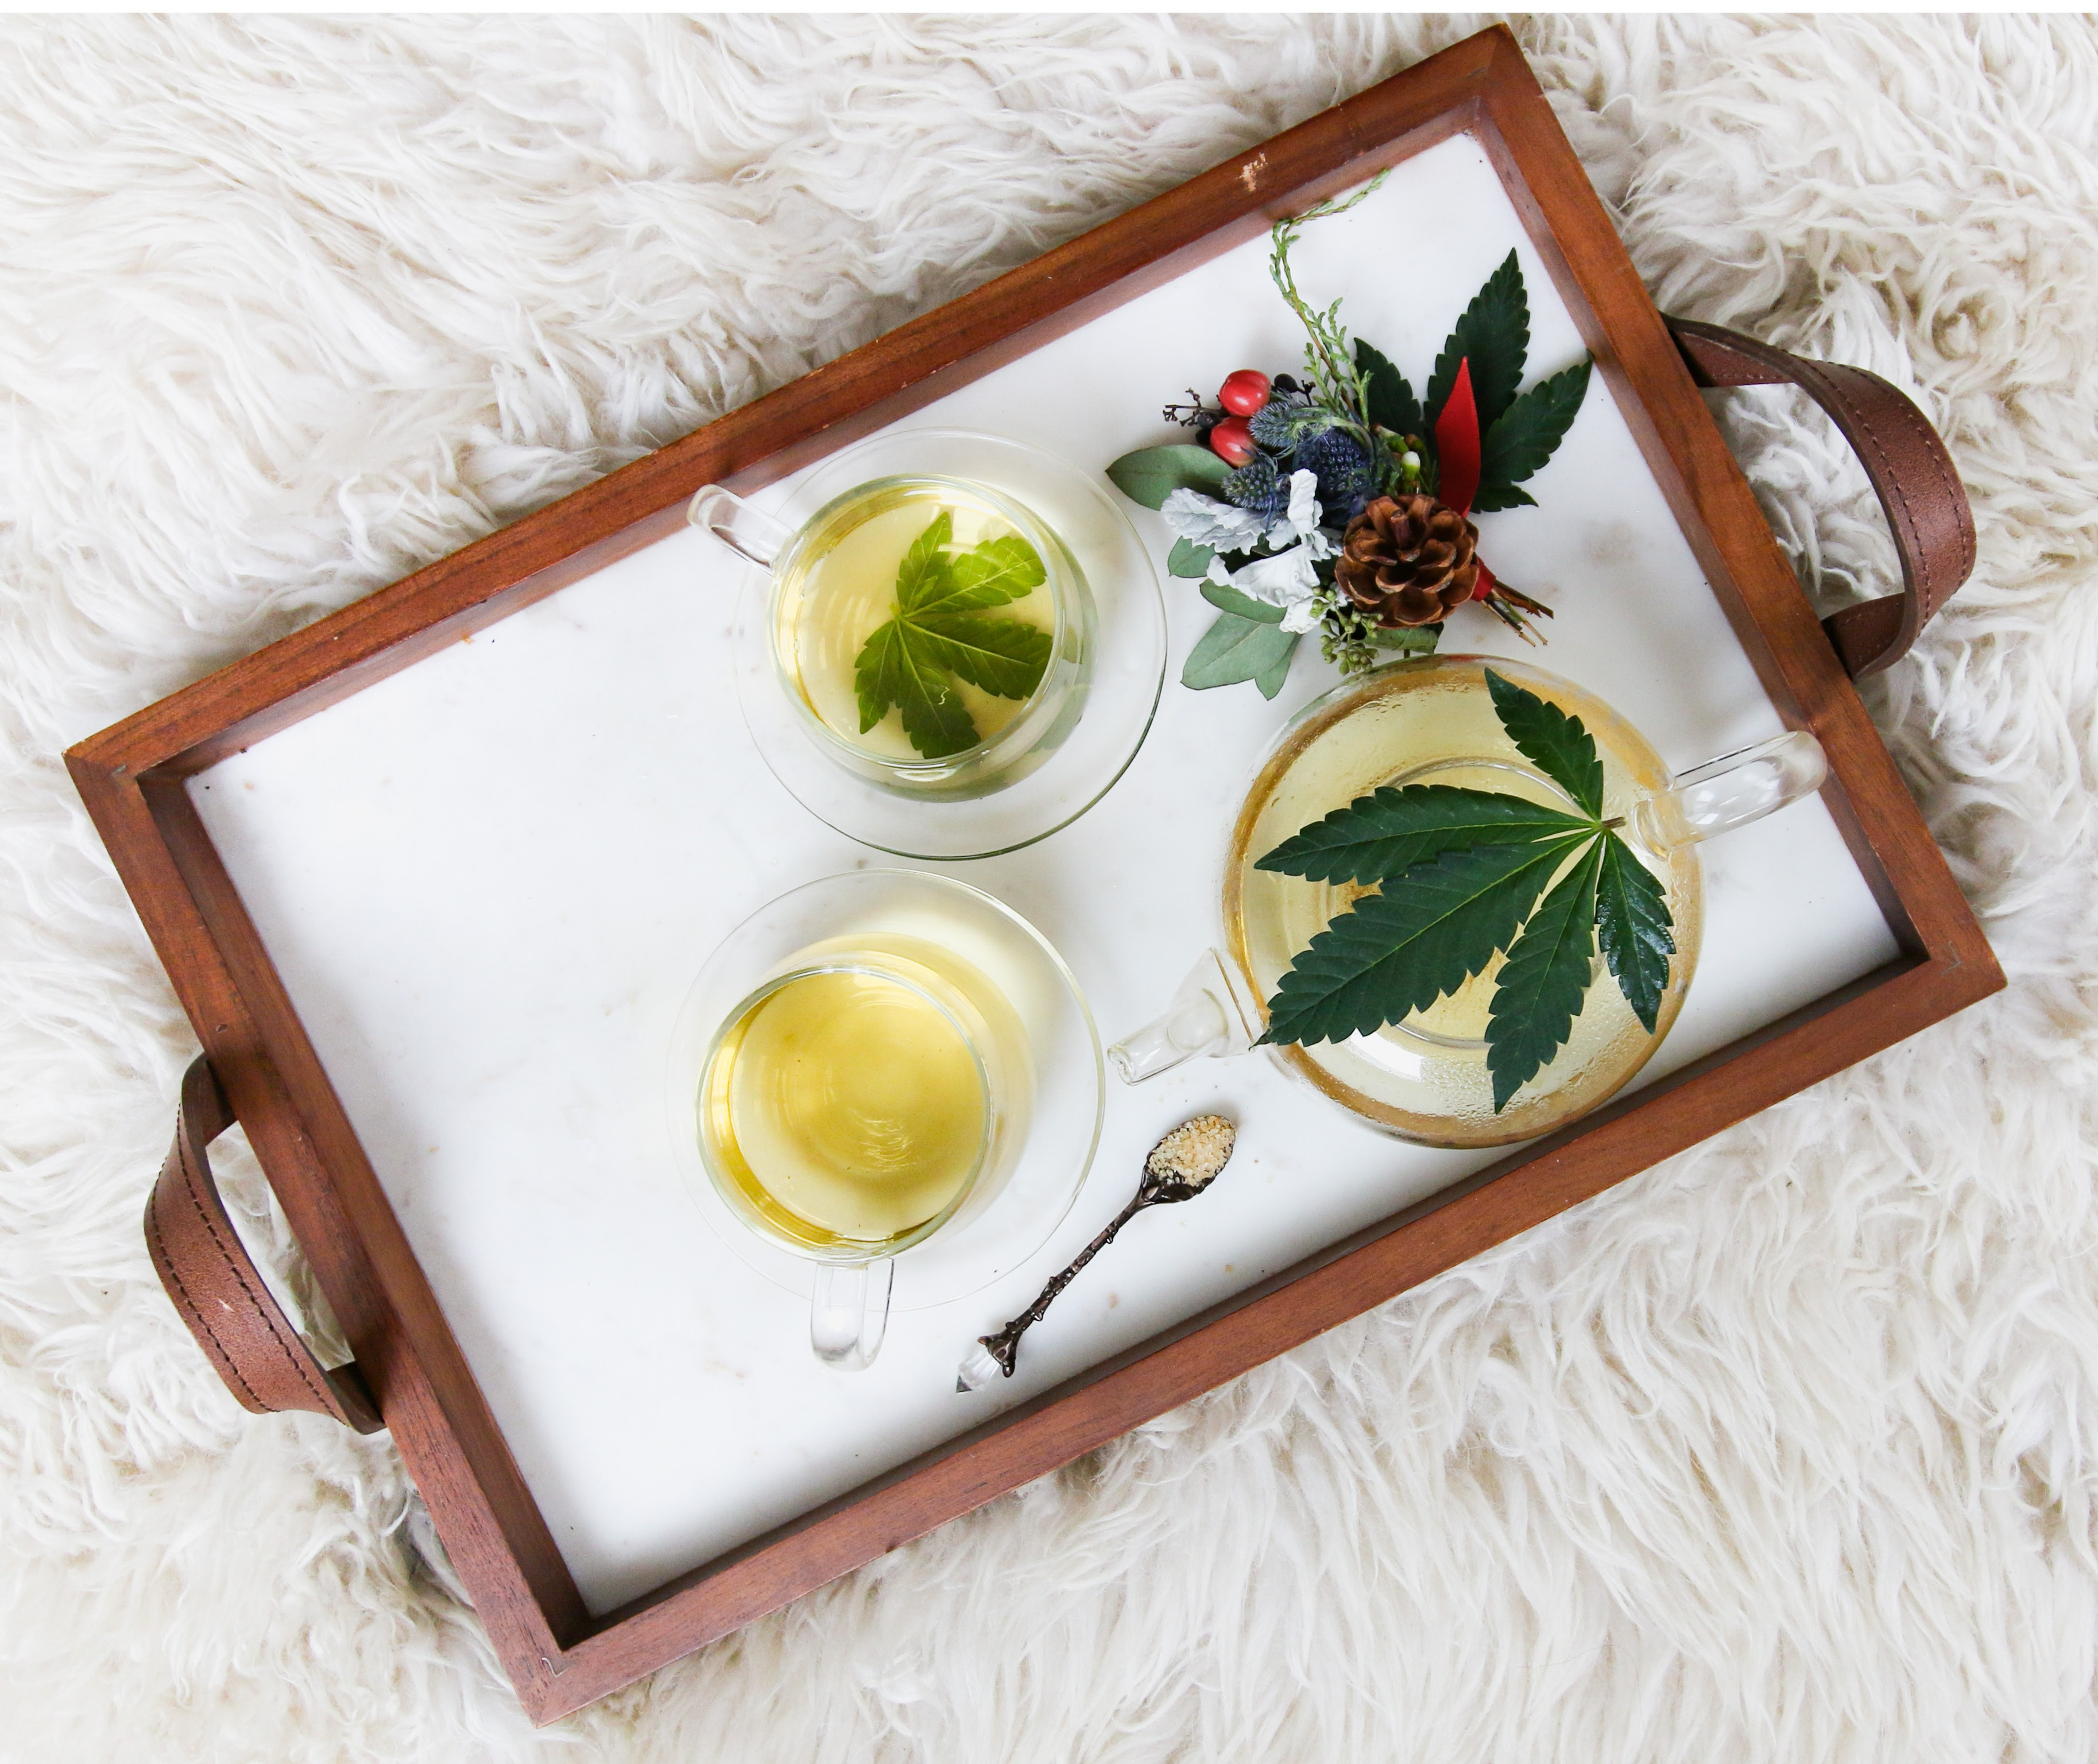 Tray with herbal cannabis tea with sugar and pine cones